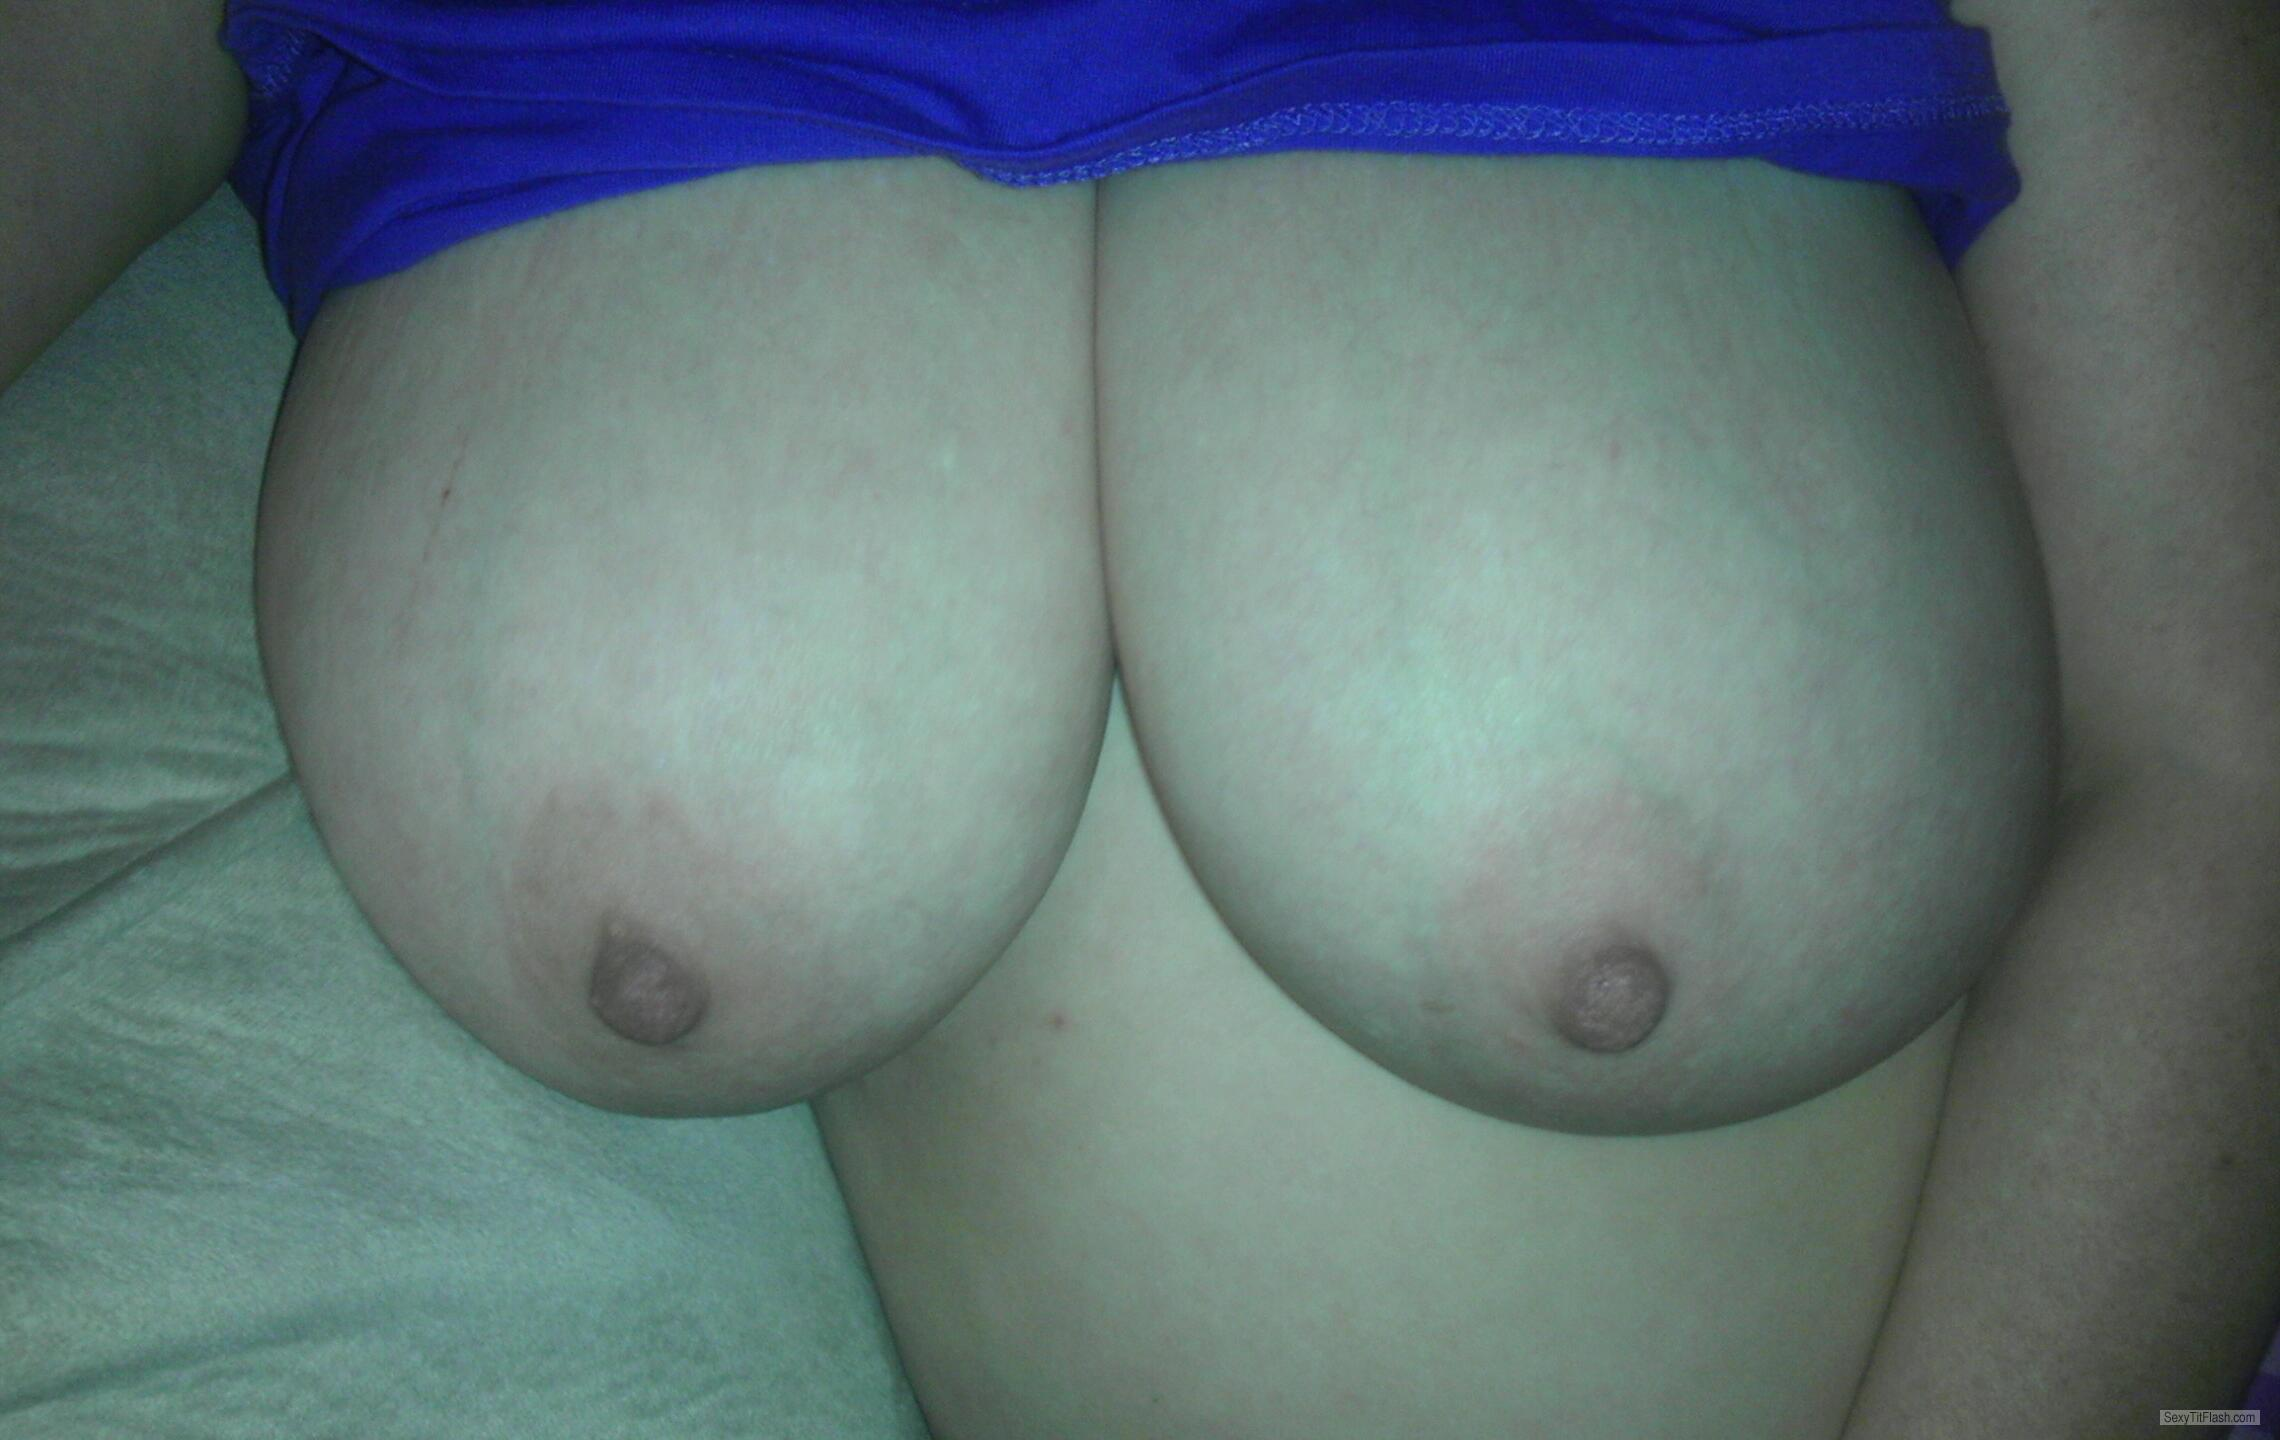 Tit Flash: Wife's Very Big Tits - Heavy DDDs from United States